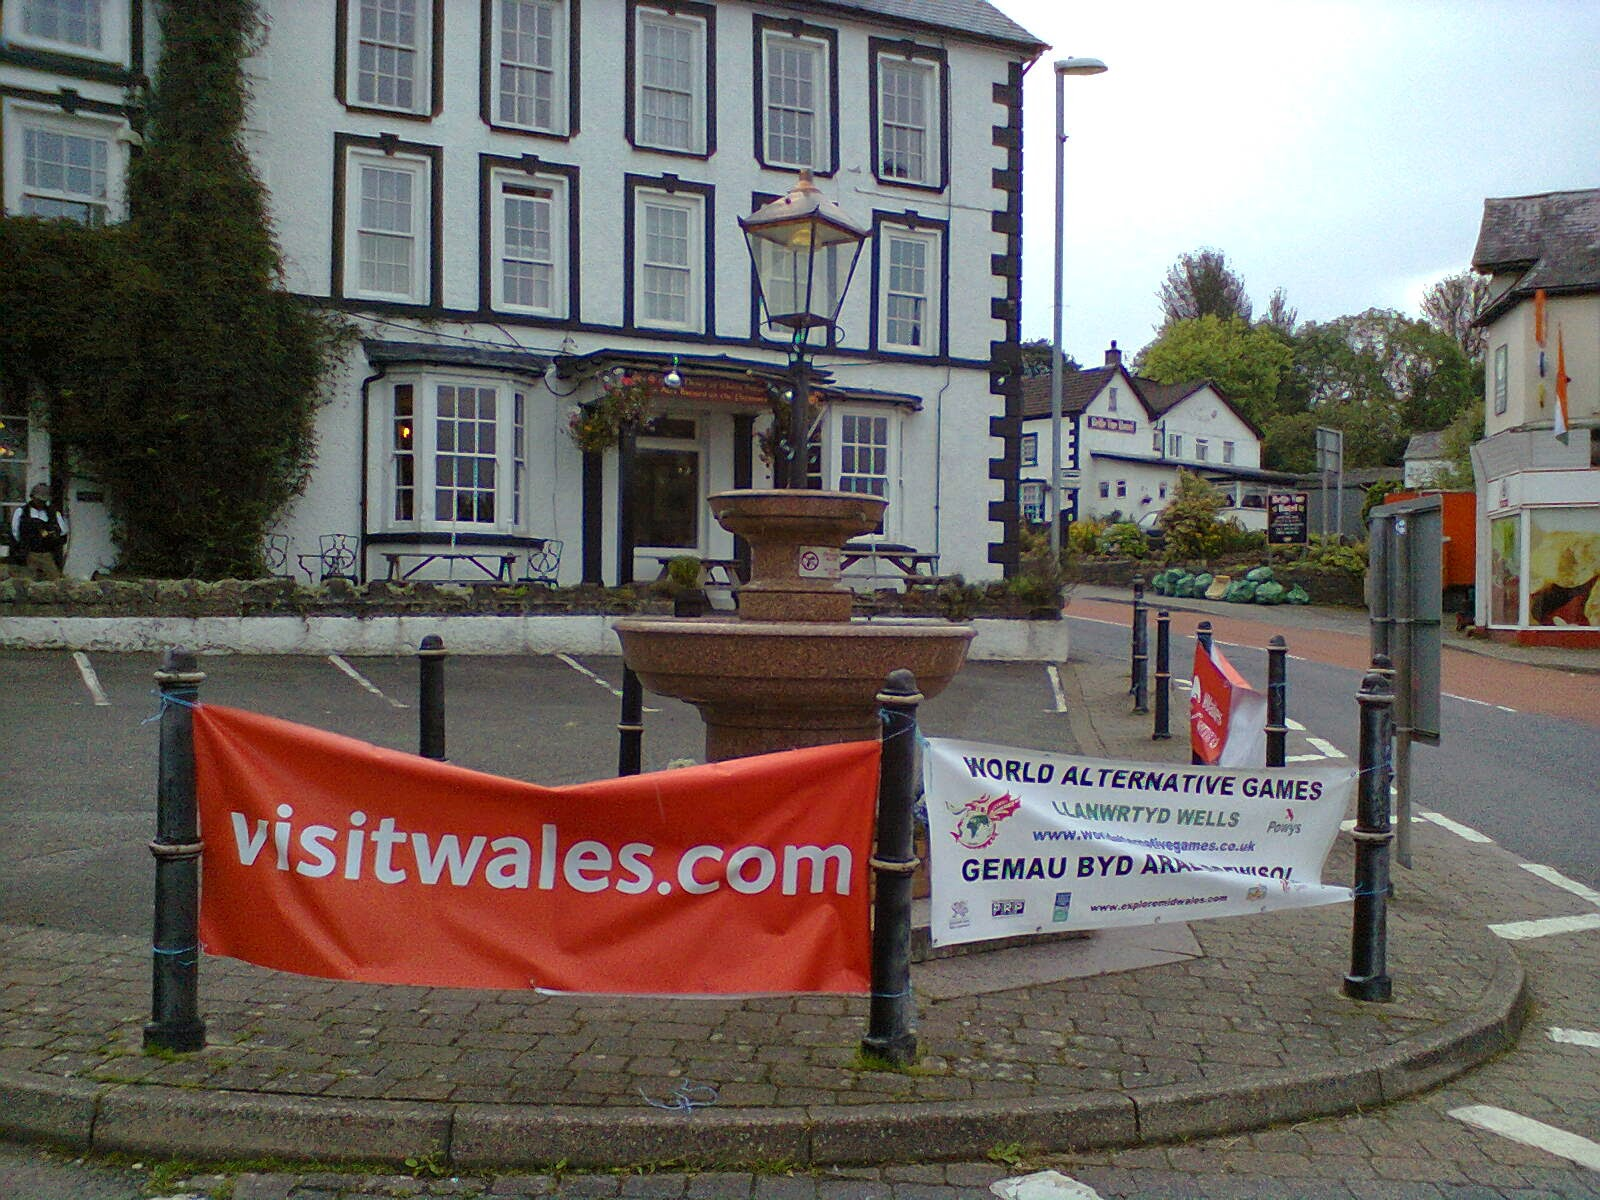 Hide N Seek in Llanwrtyd Wells - can you spot me and Emily in this photo in the town centre?